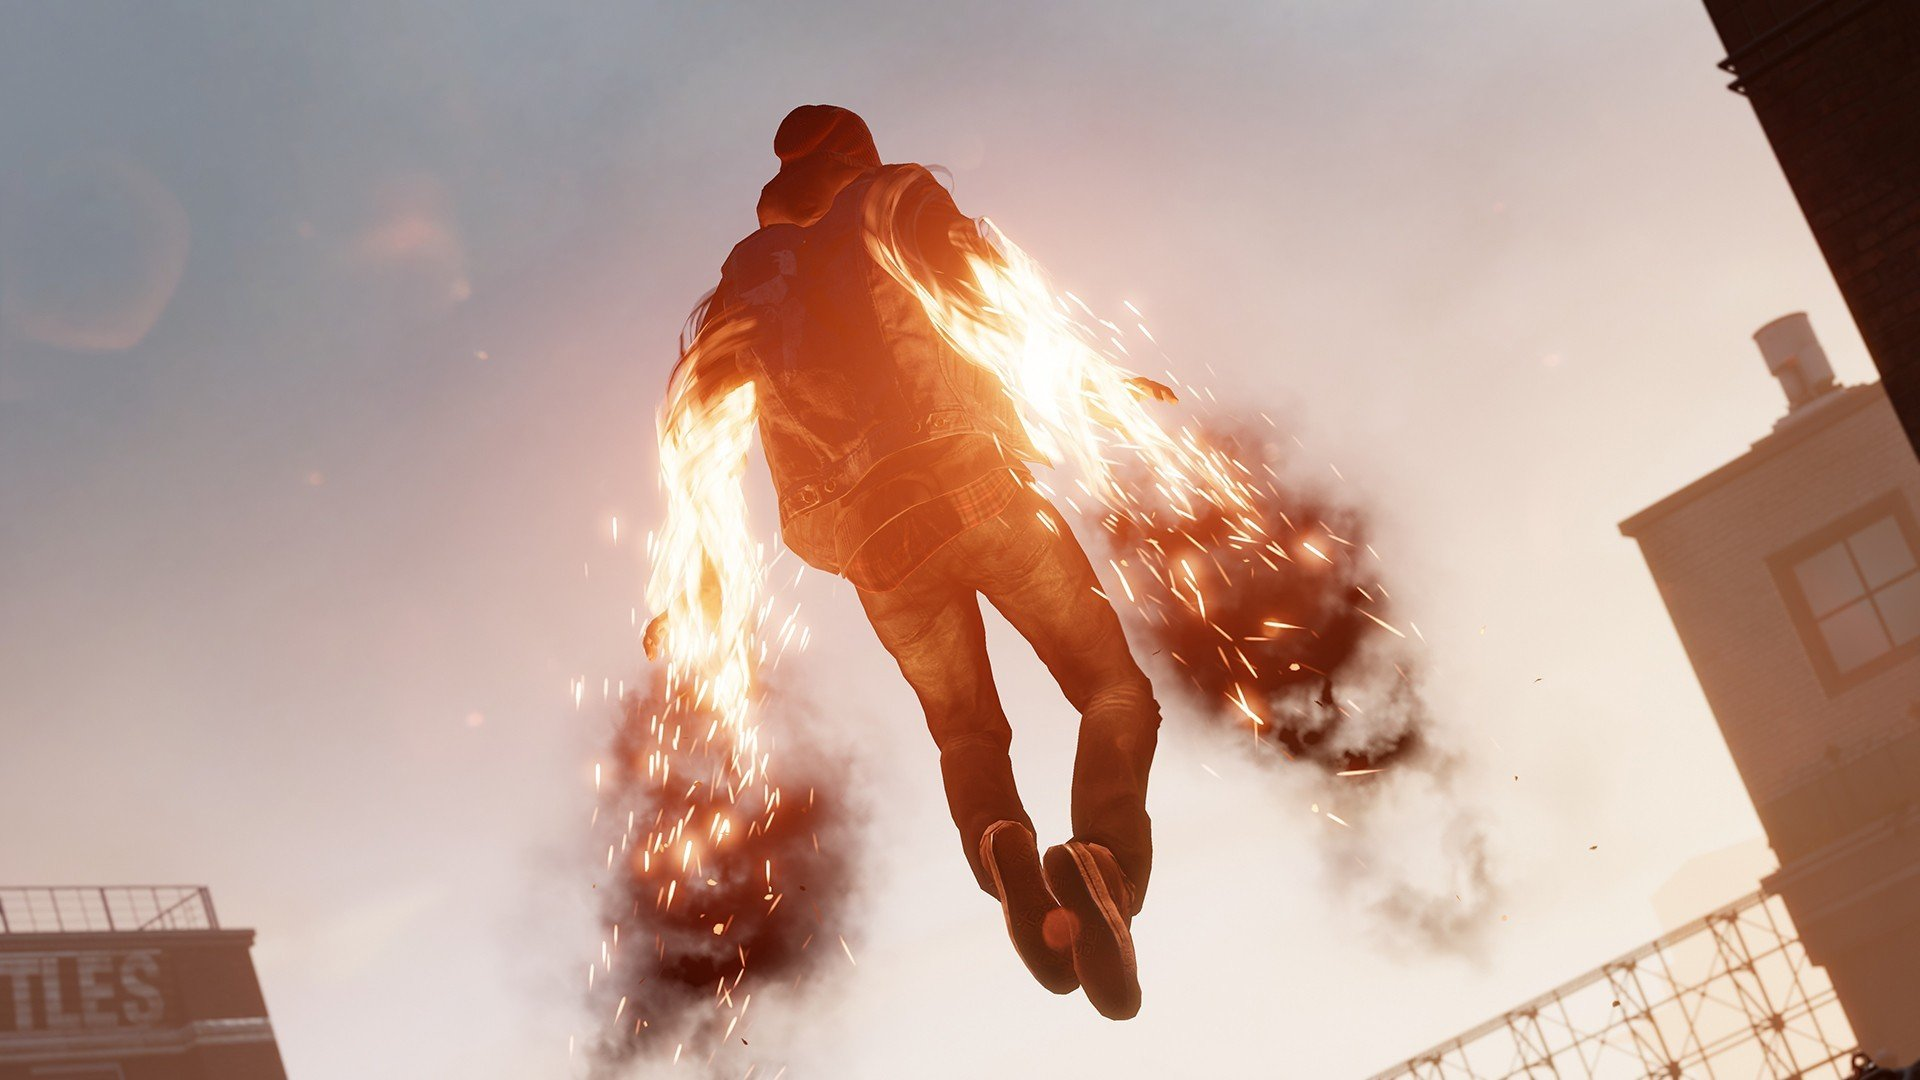 PC gaming, Infamous: Second Son Wallpaper